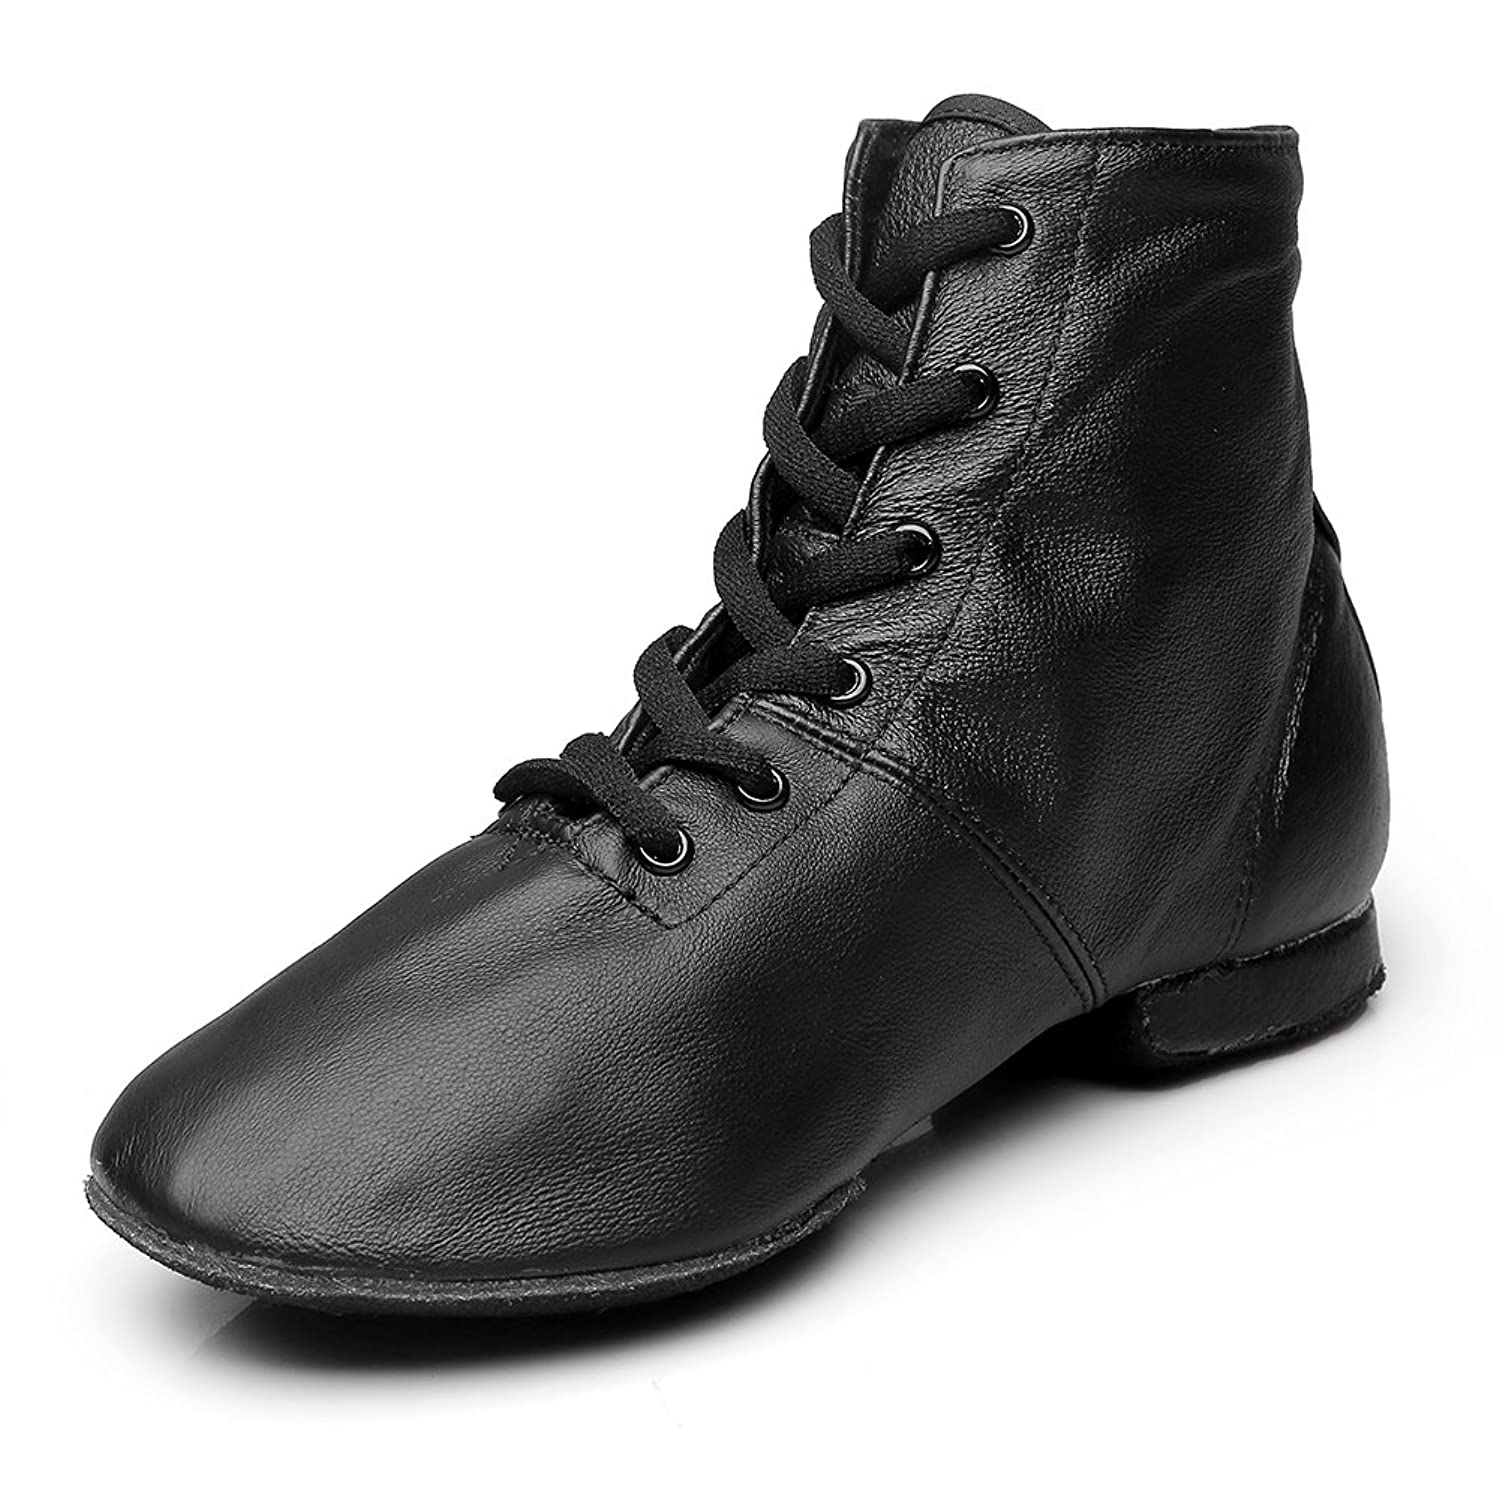 Vintage Boots- Winter Rain and Snow Boots MSMAX Professional Soft Leather Unisex Dance Shoe $28.99 AT vintagedancer.com